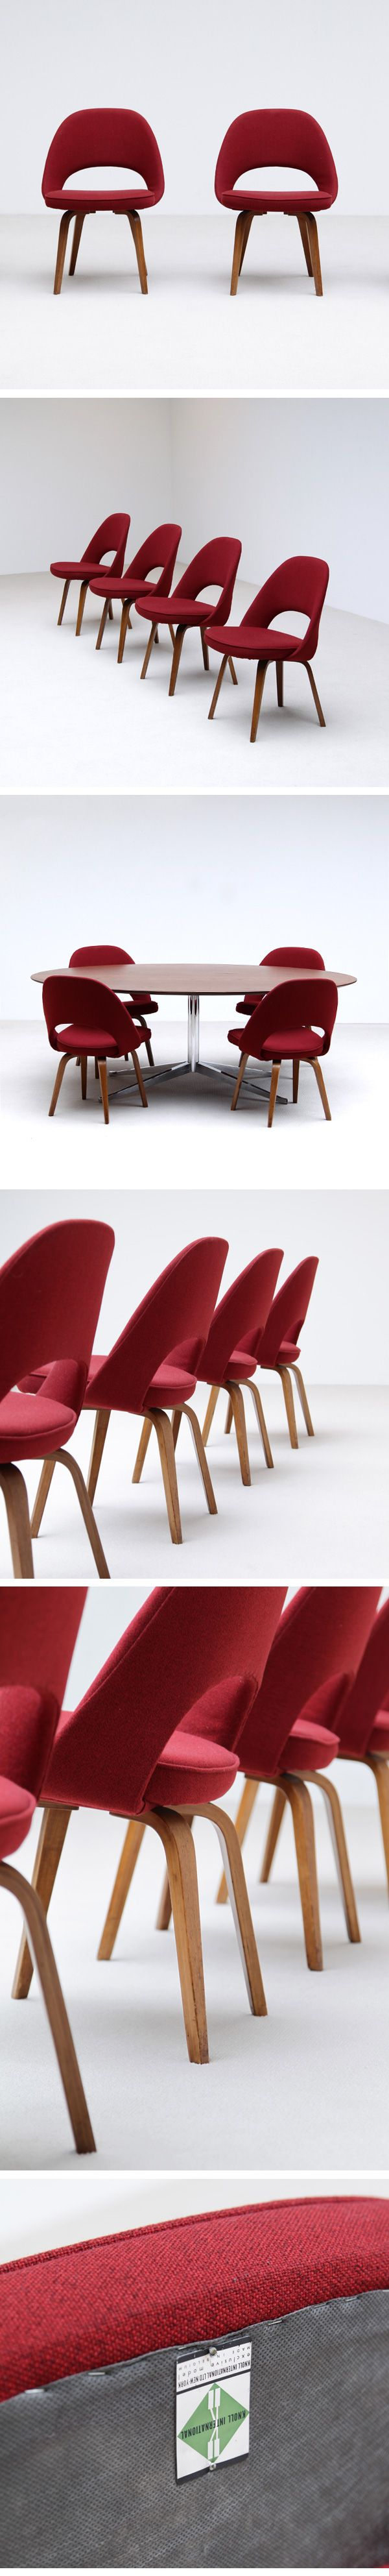 Knoll life chair geek - Early Saarinen For Knoll Dining Chairs Set Of Four Dining Chairs By Eero Saarinen For Knoll